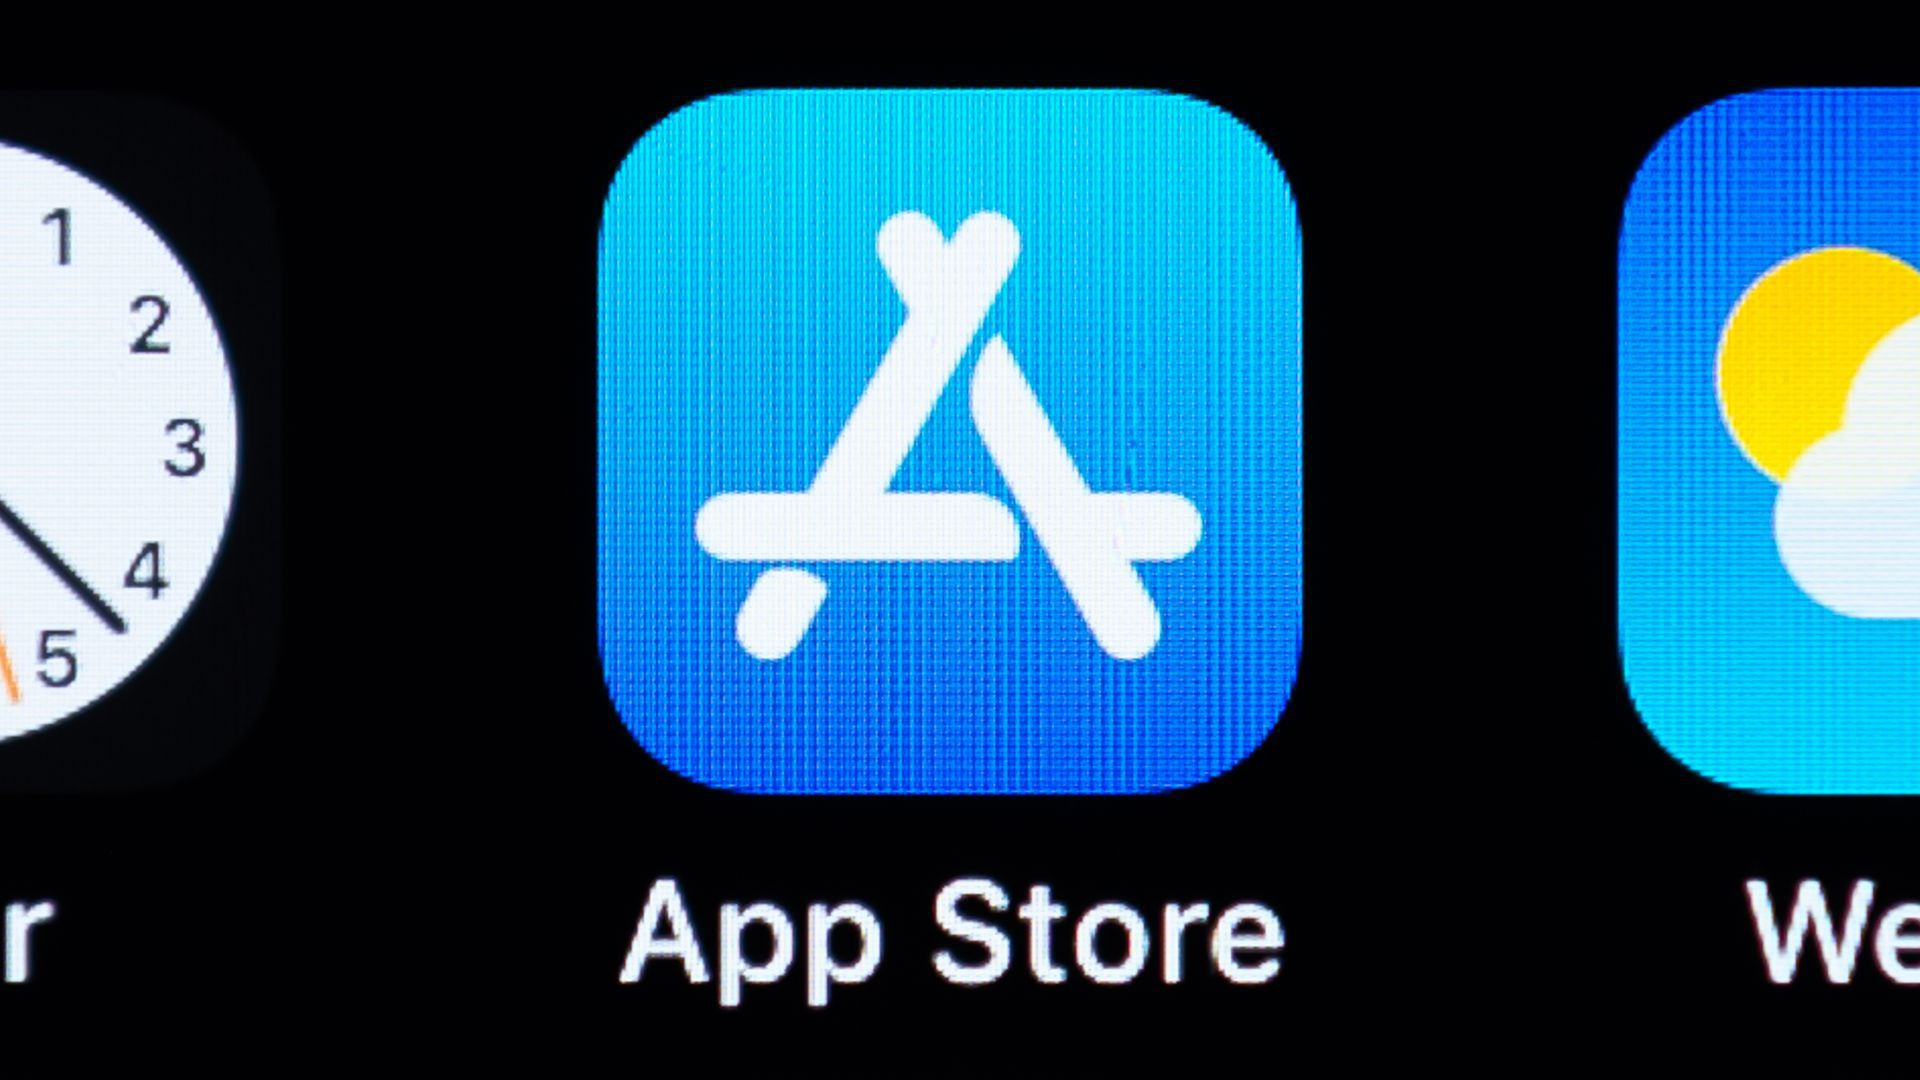 An image of the App Store icon on a smartphone